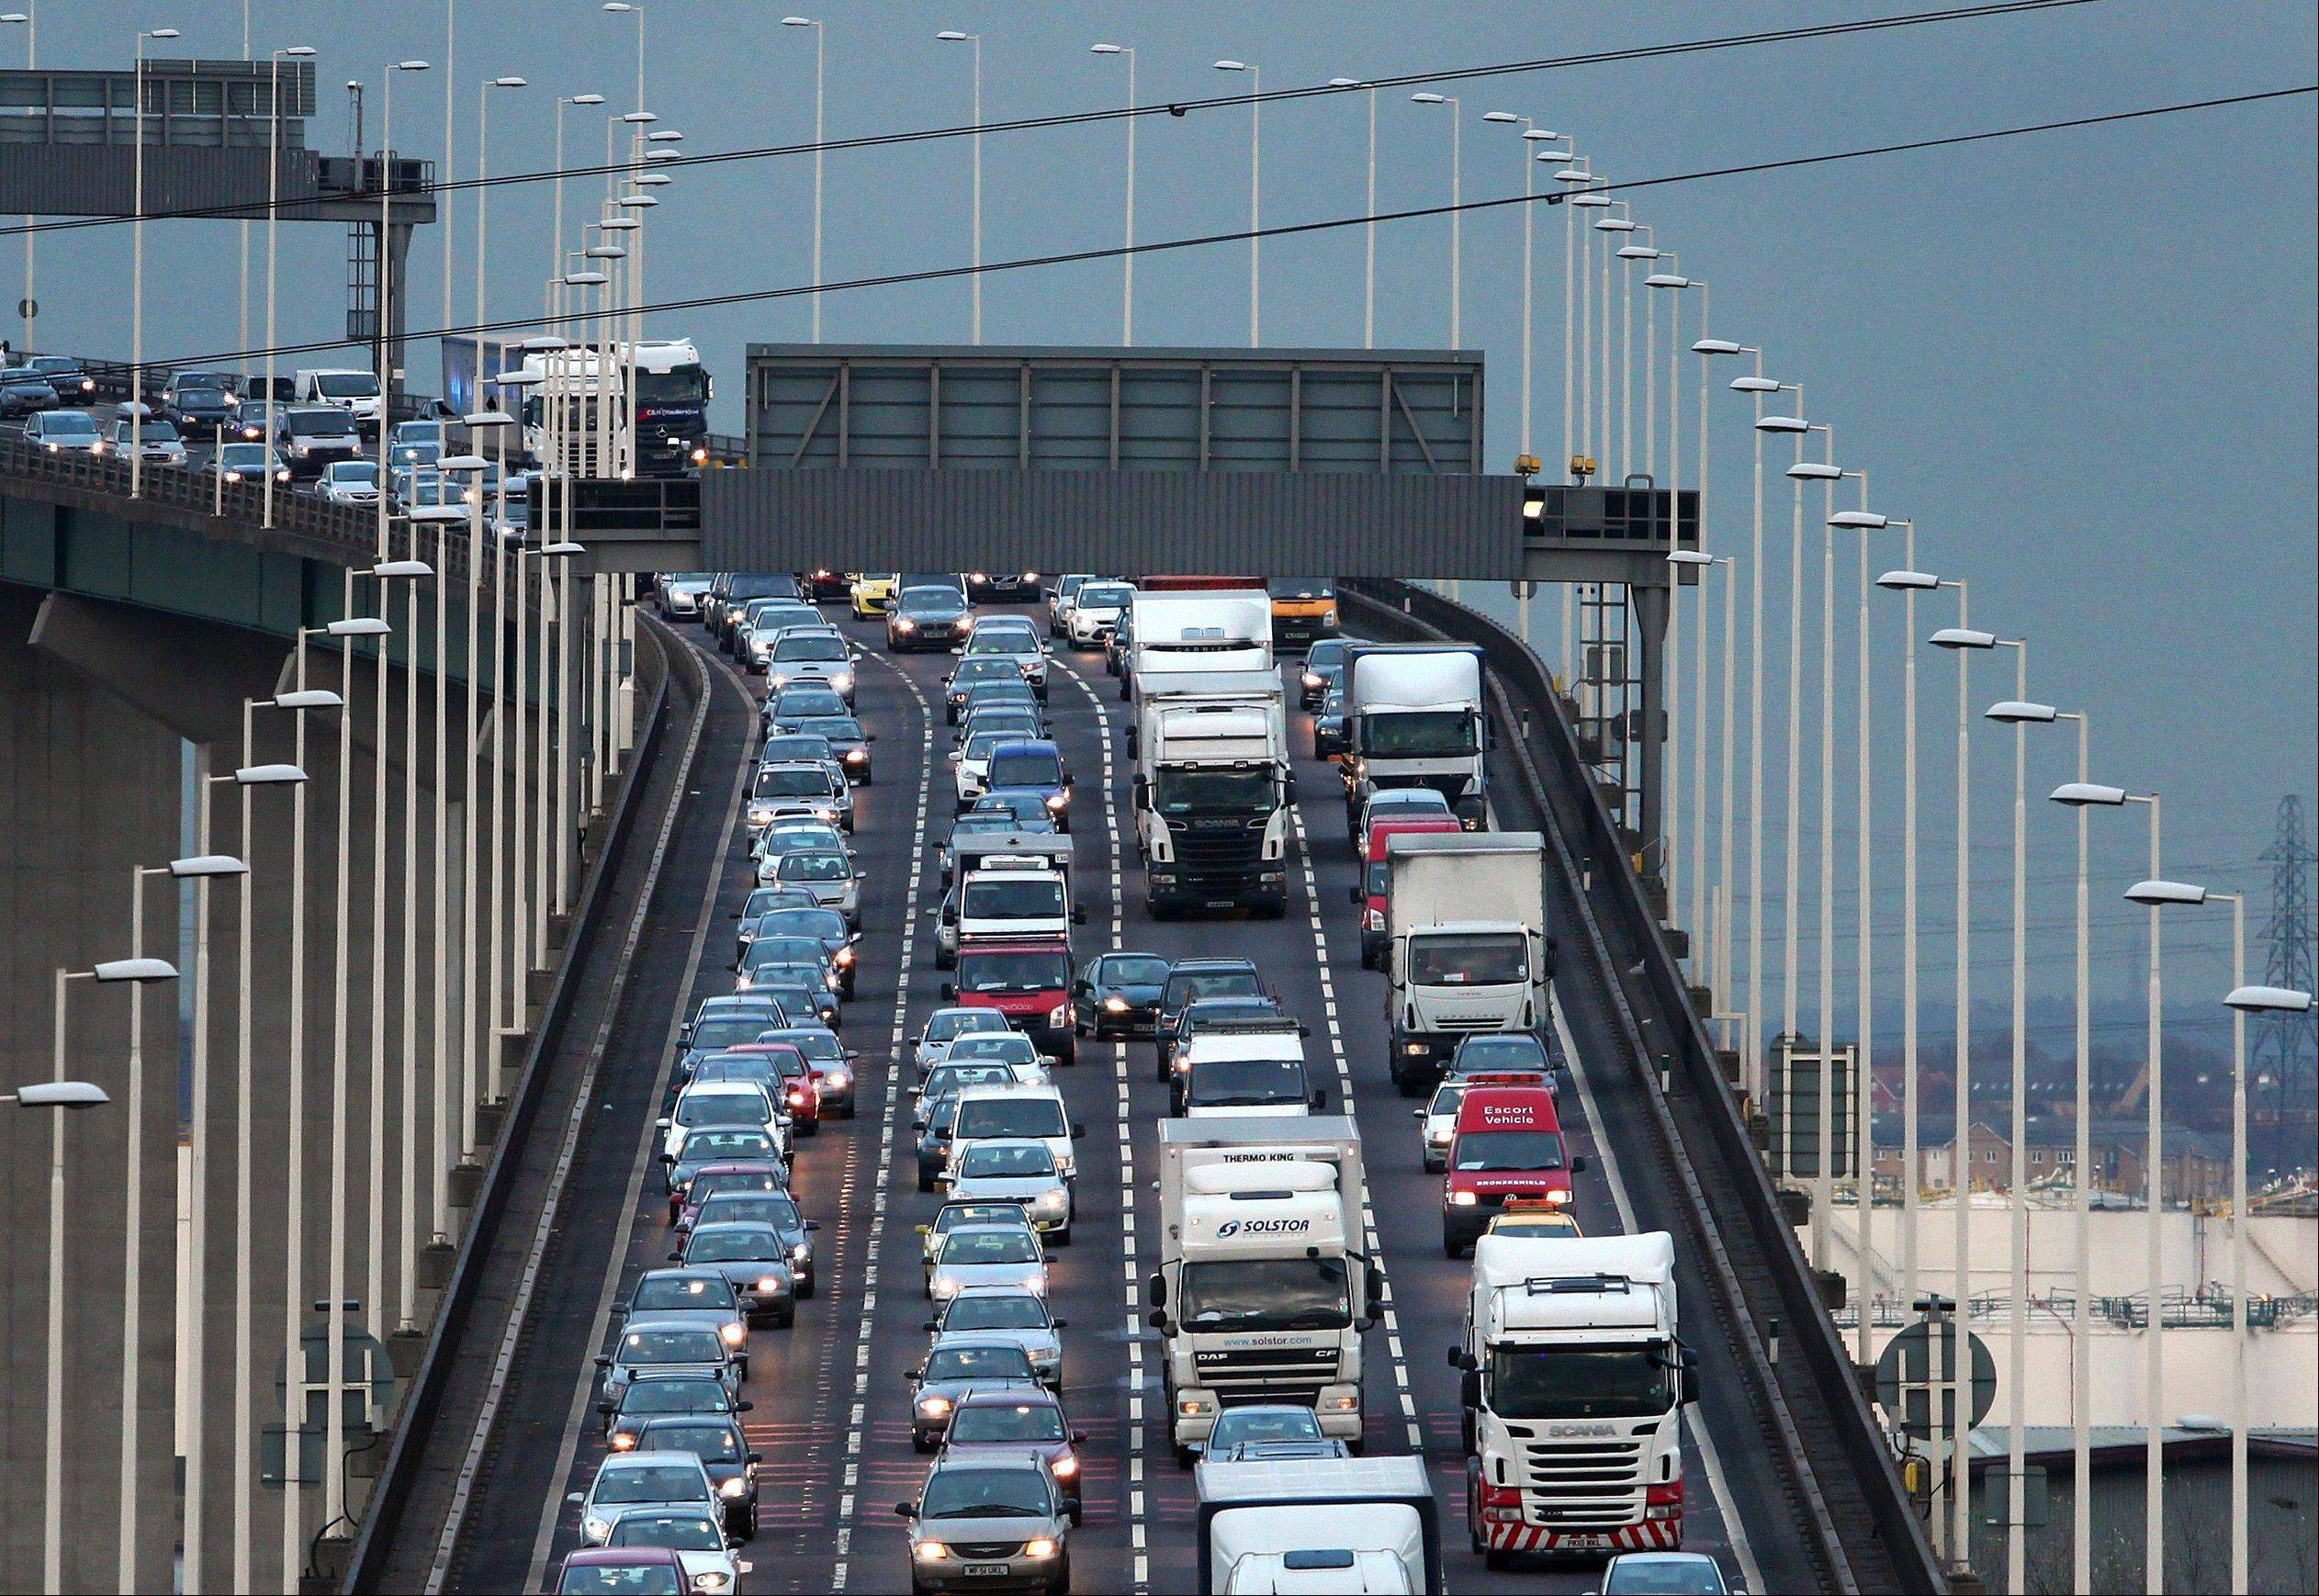 A general view of traffic crossing the Queen Elizabeth II Bridge across the River Thames at Dartford, south eastern England, as traffic builds up for the Christmas getaway.